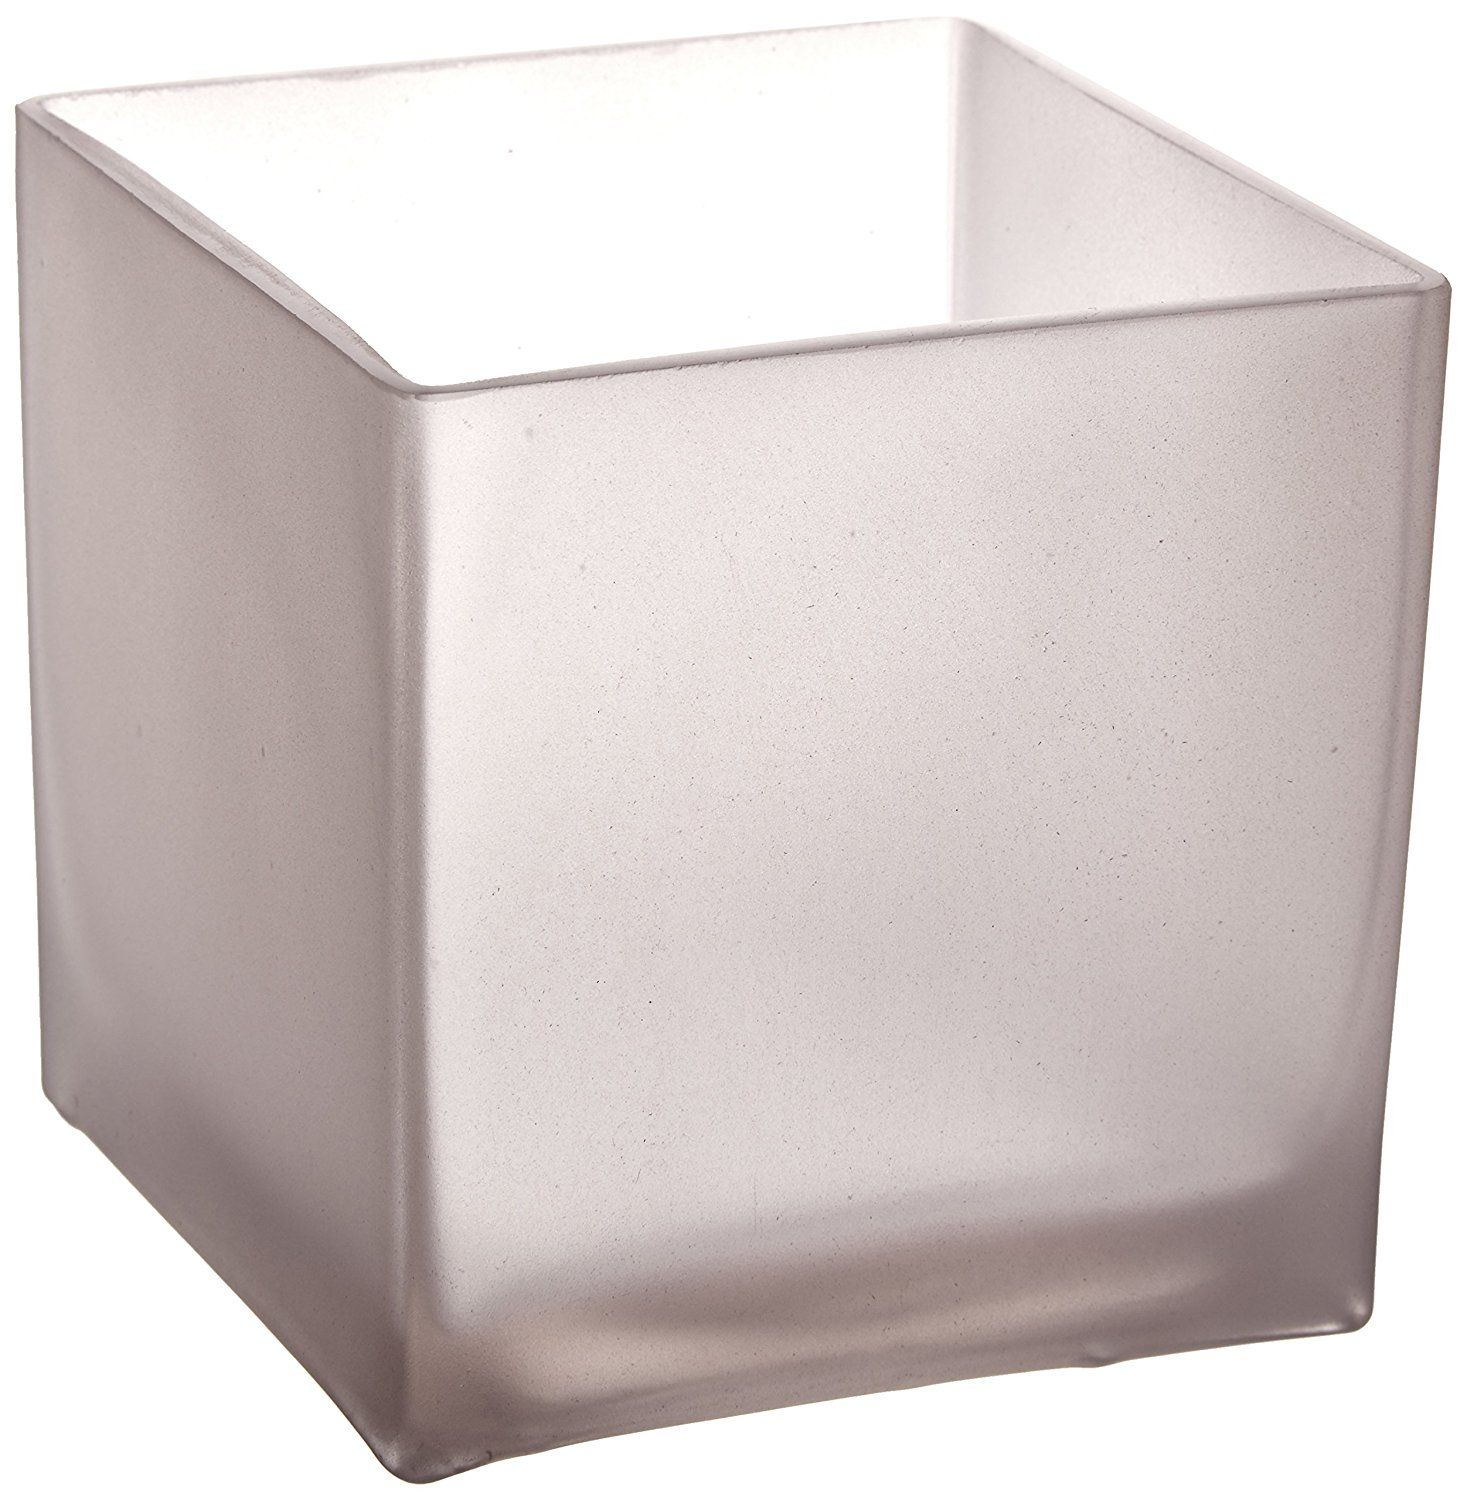 Wgv frosted square cube glass vasevotive candle holder inch